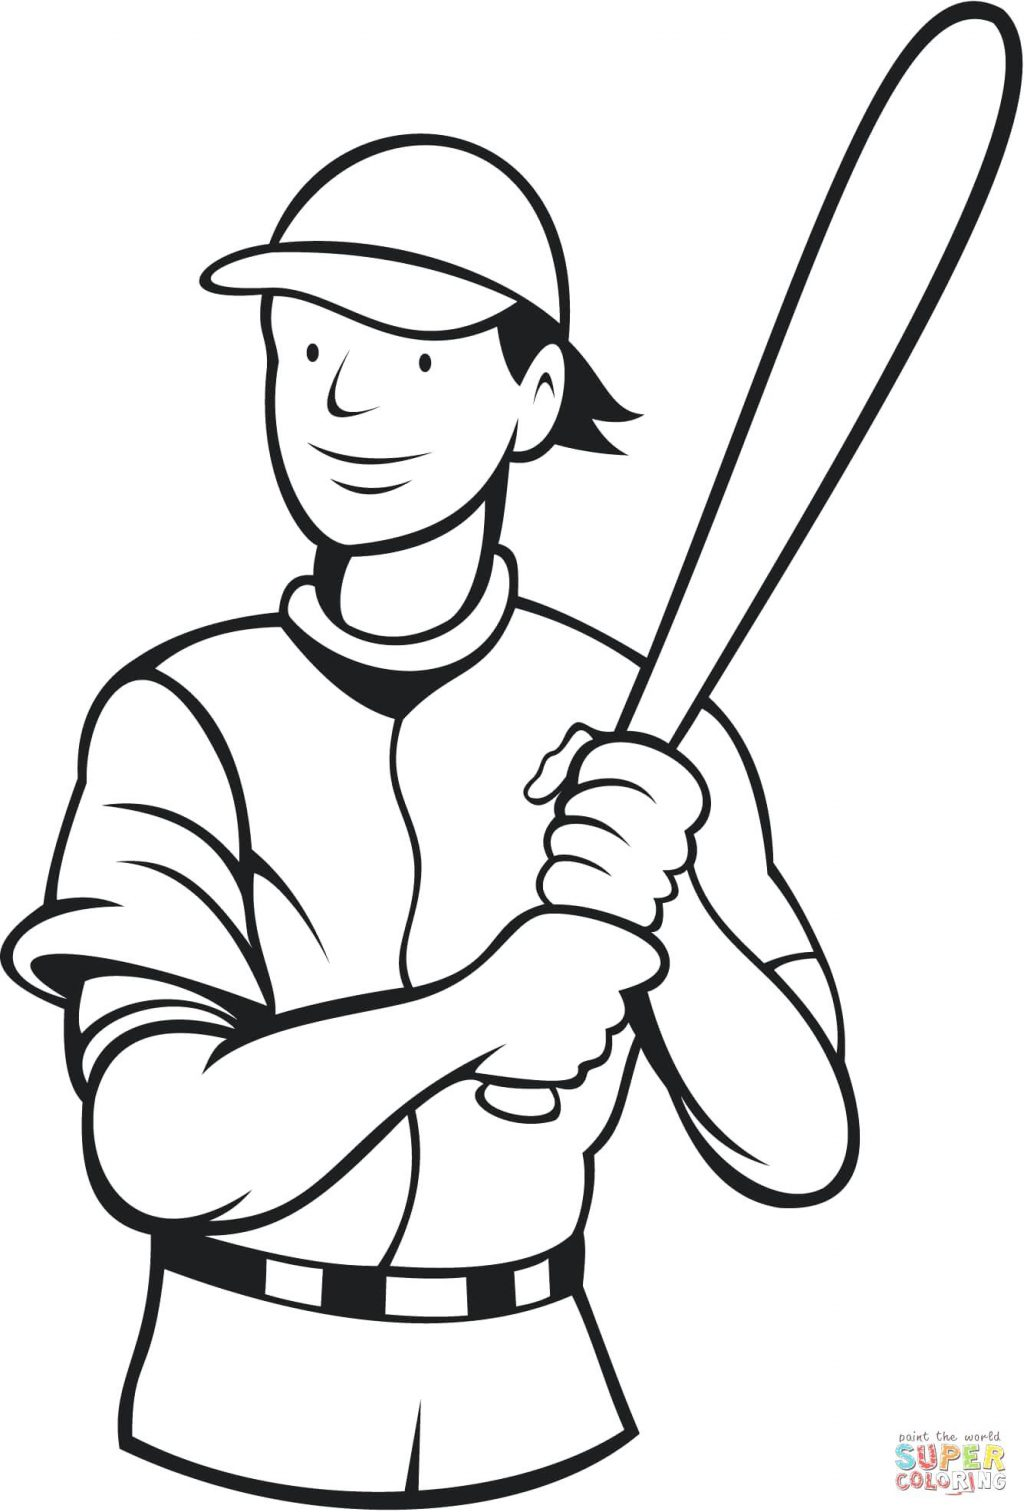 1024x1512 Coloring Pages Baseball Coloring Pages Pitcher Playing Page